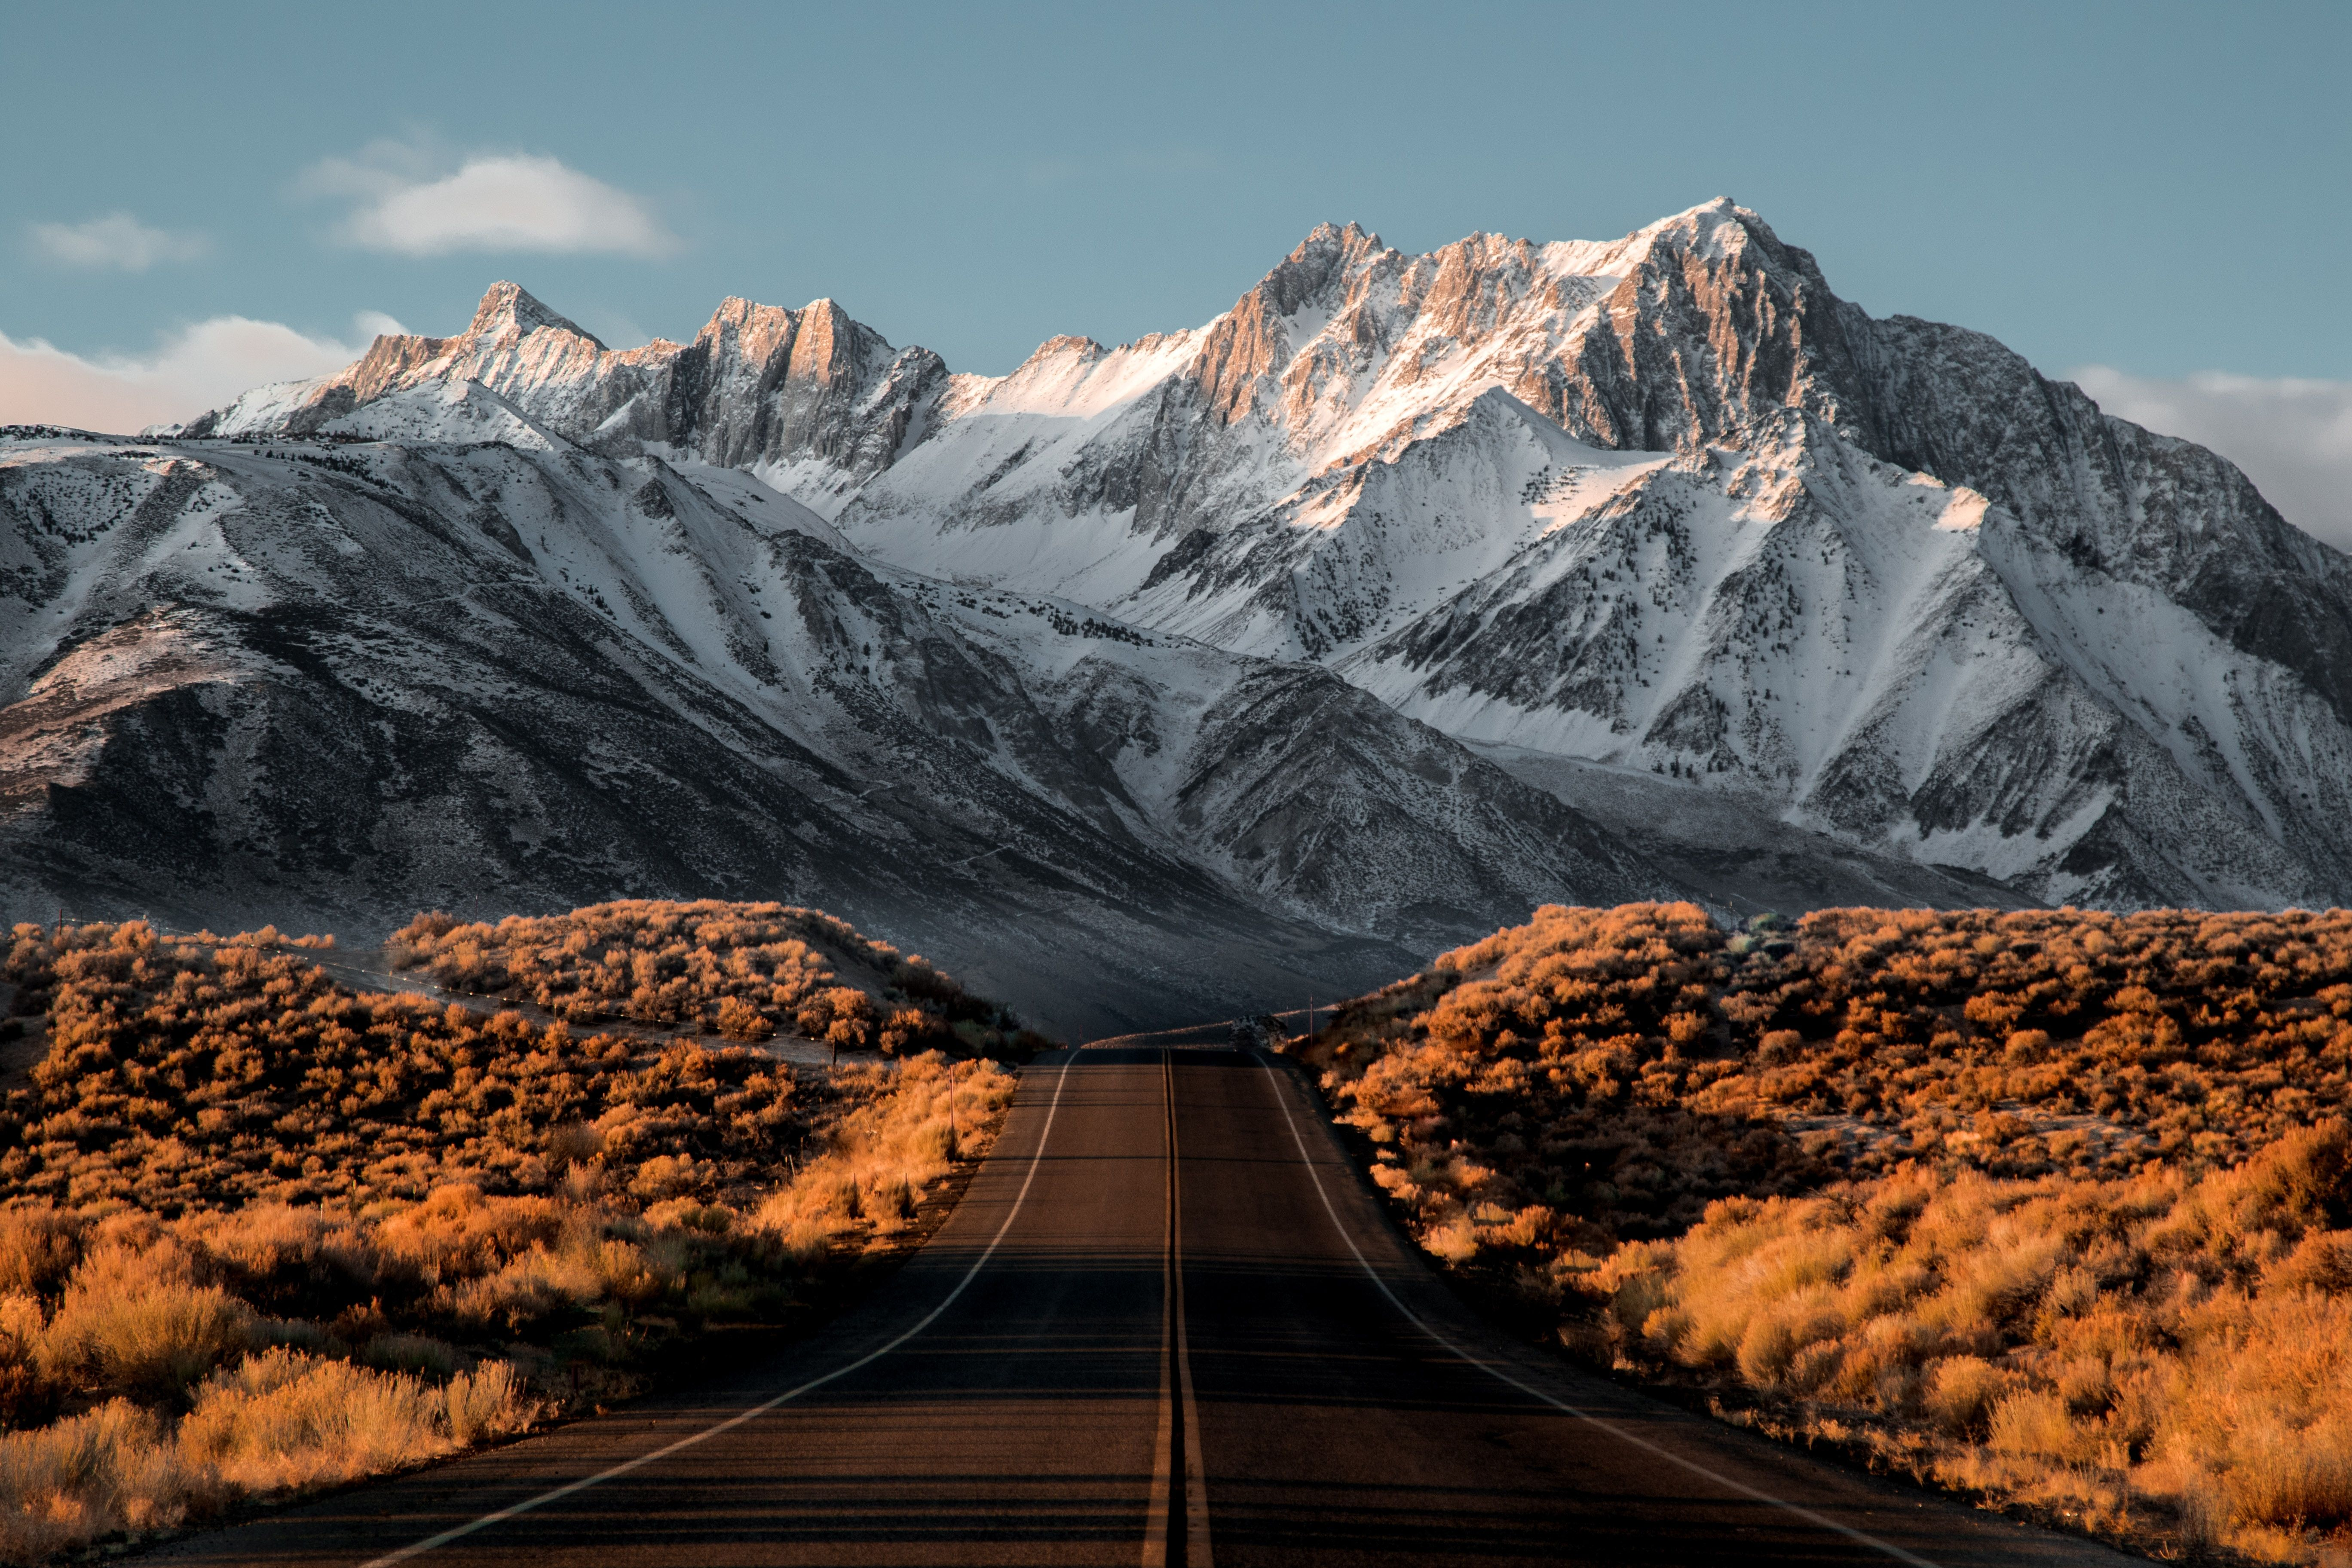 Nature Water Snow Mountains Road Landscape Snowy